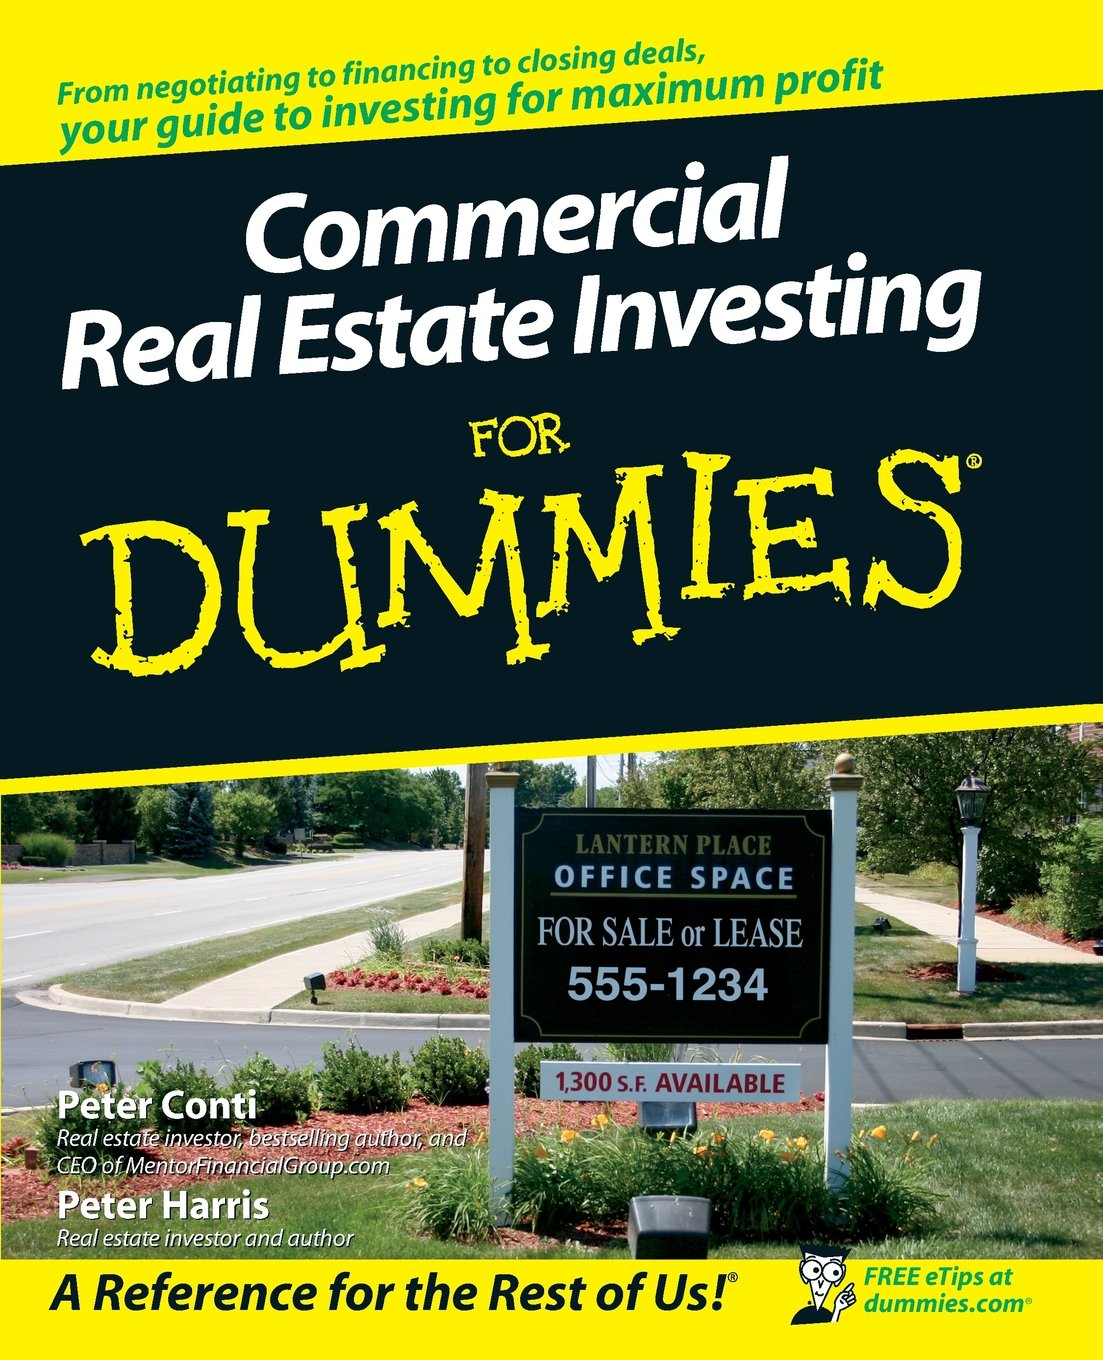 Commercial real estate investing for dummies peter conti peter commercial real estate investing for dummies peter conti peter harris 9780470174913 amazon books magicingreecefo Images